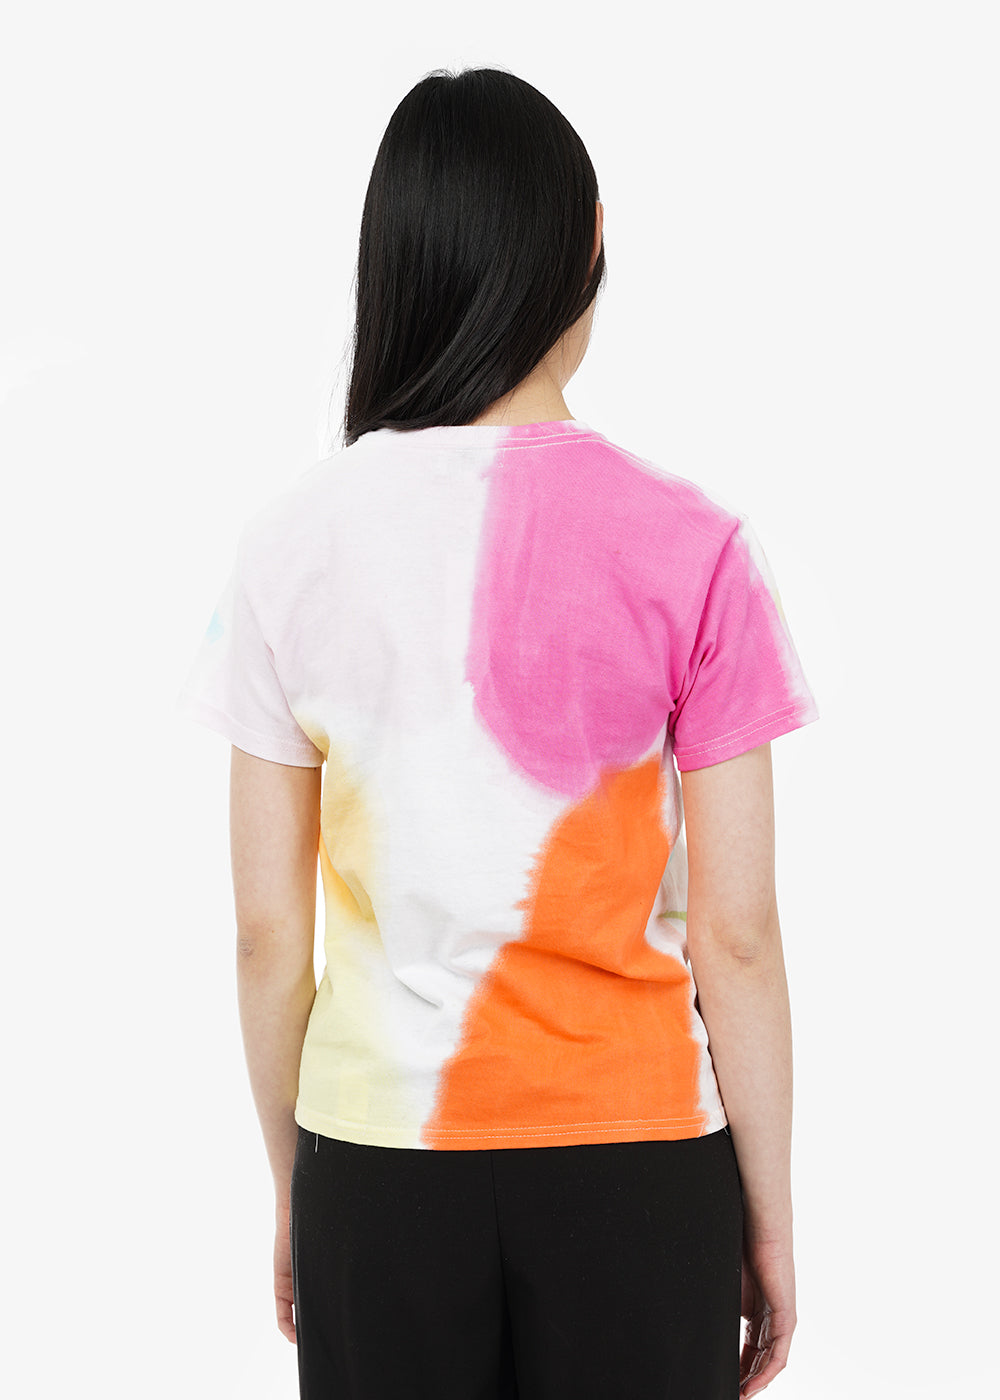 Collina Strada Memphis Tie Dye Abolish Ice Tee — Shop sustainable fashion and slow fashion at New Classics Studios